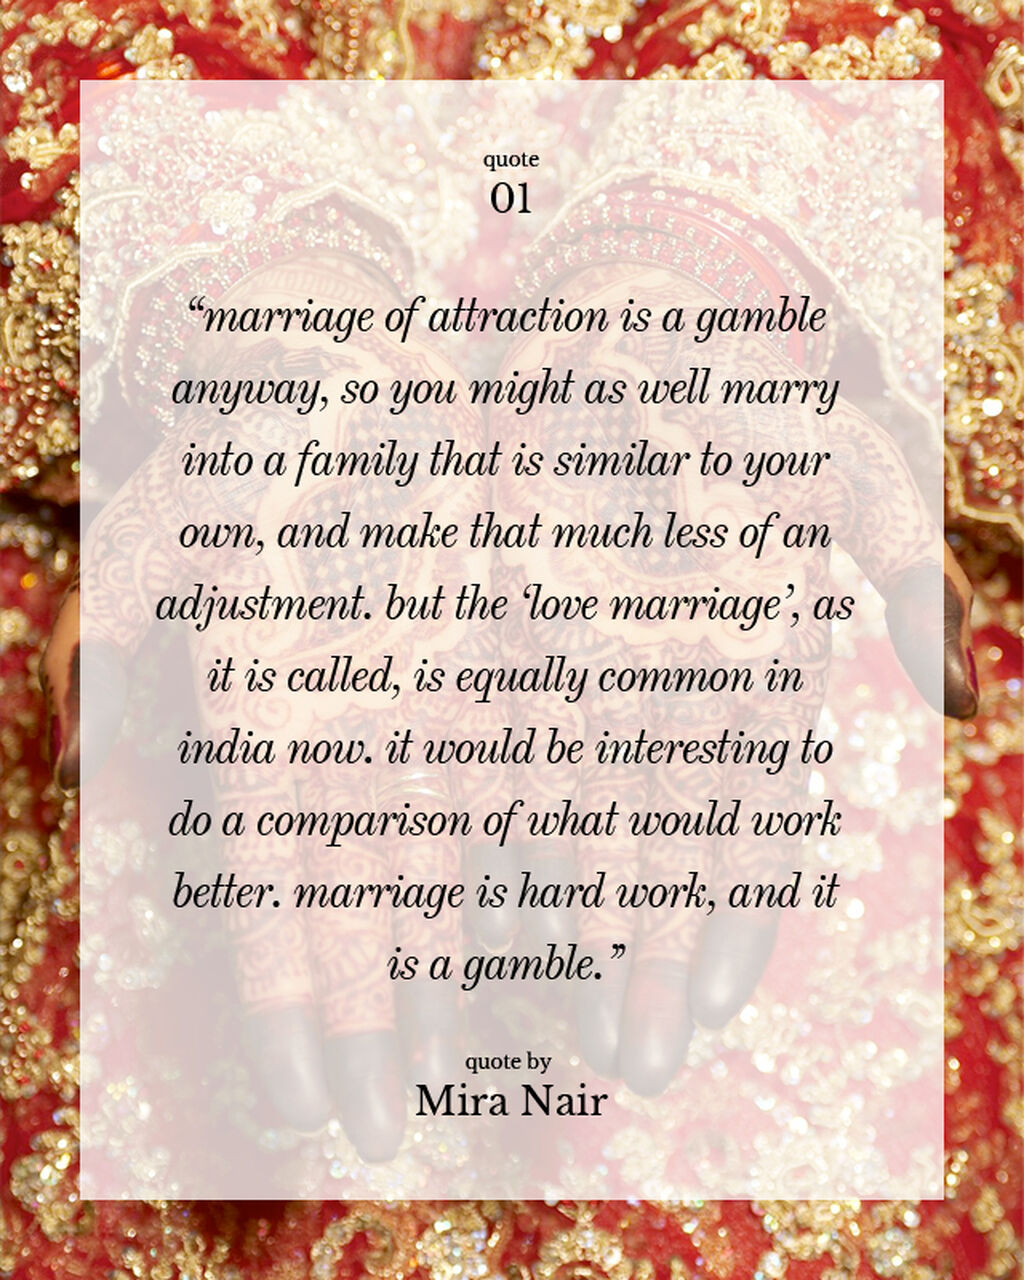 Mira Nair In 5 Quotes